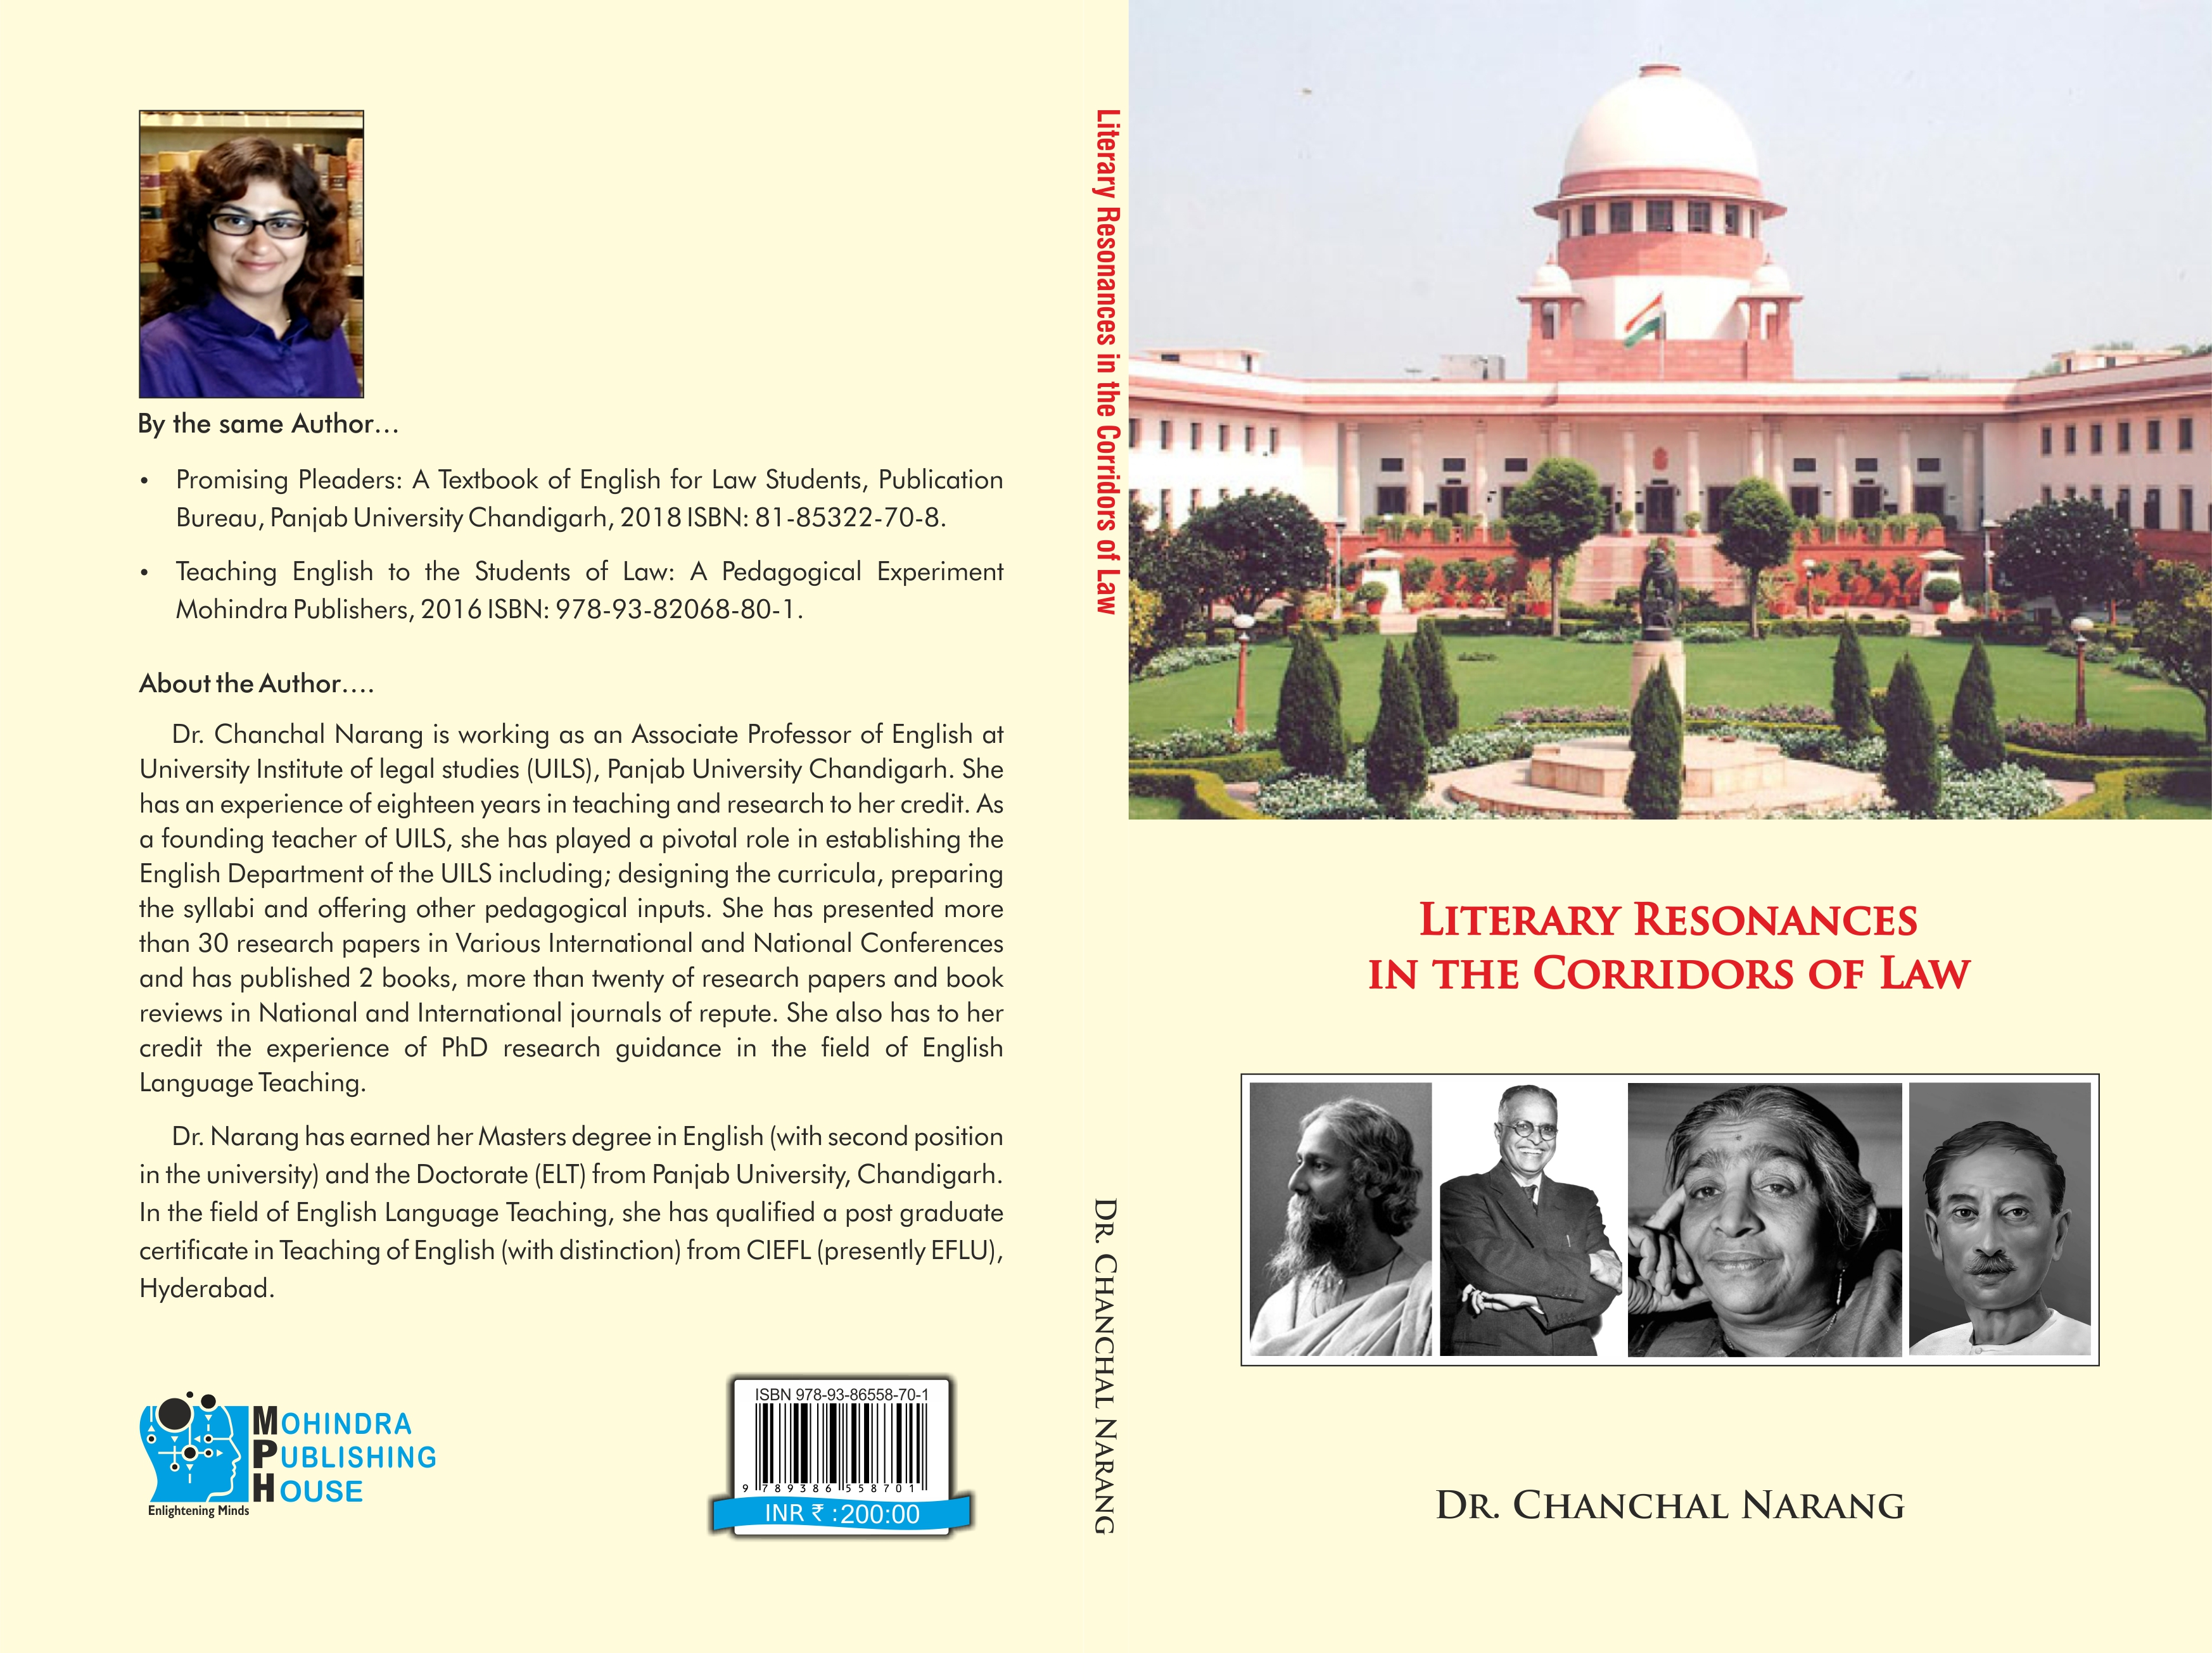 Literary resonances in the corridors of law by Dr Chanchal Narang published by mohindra publishing house